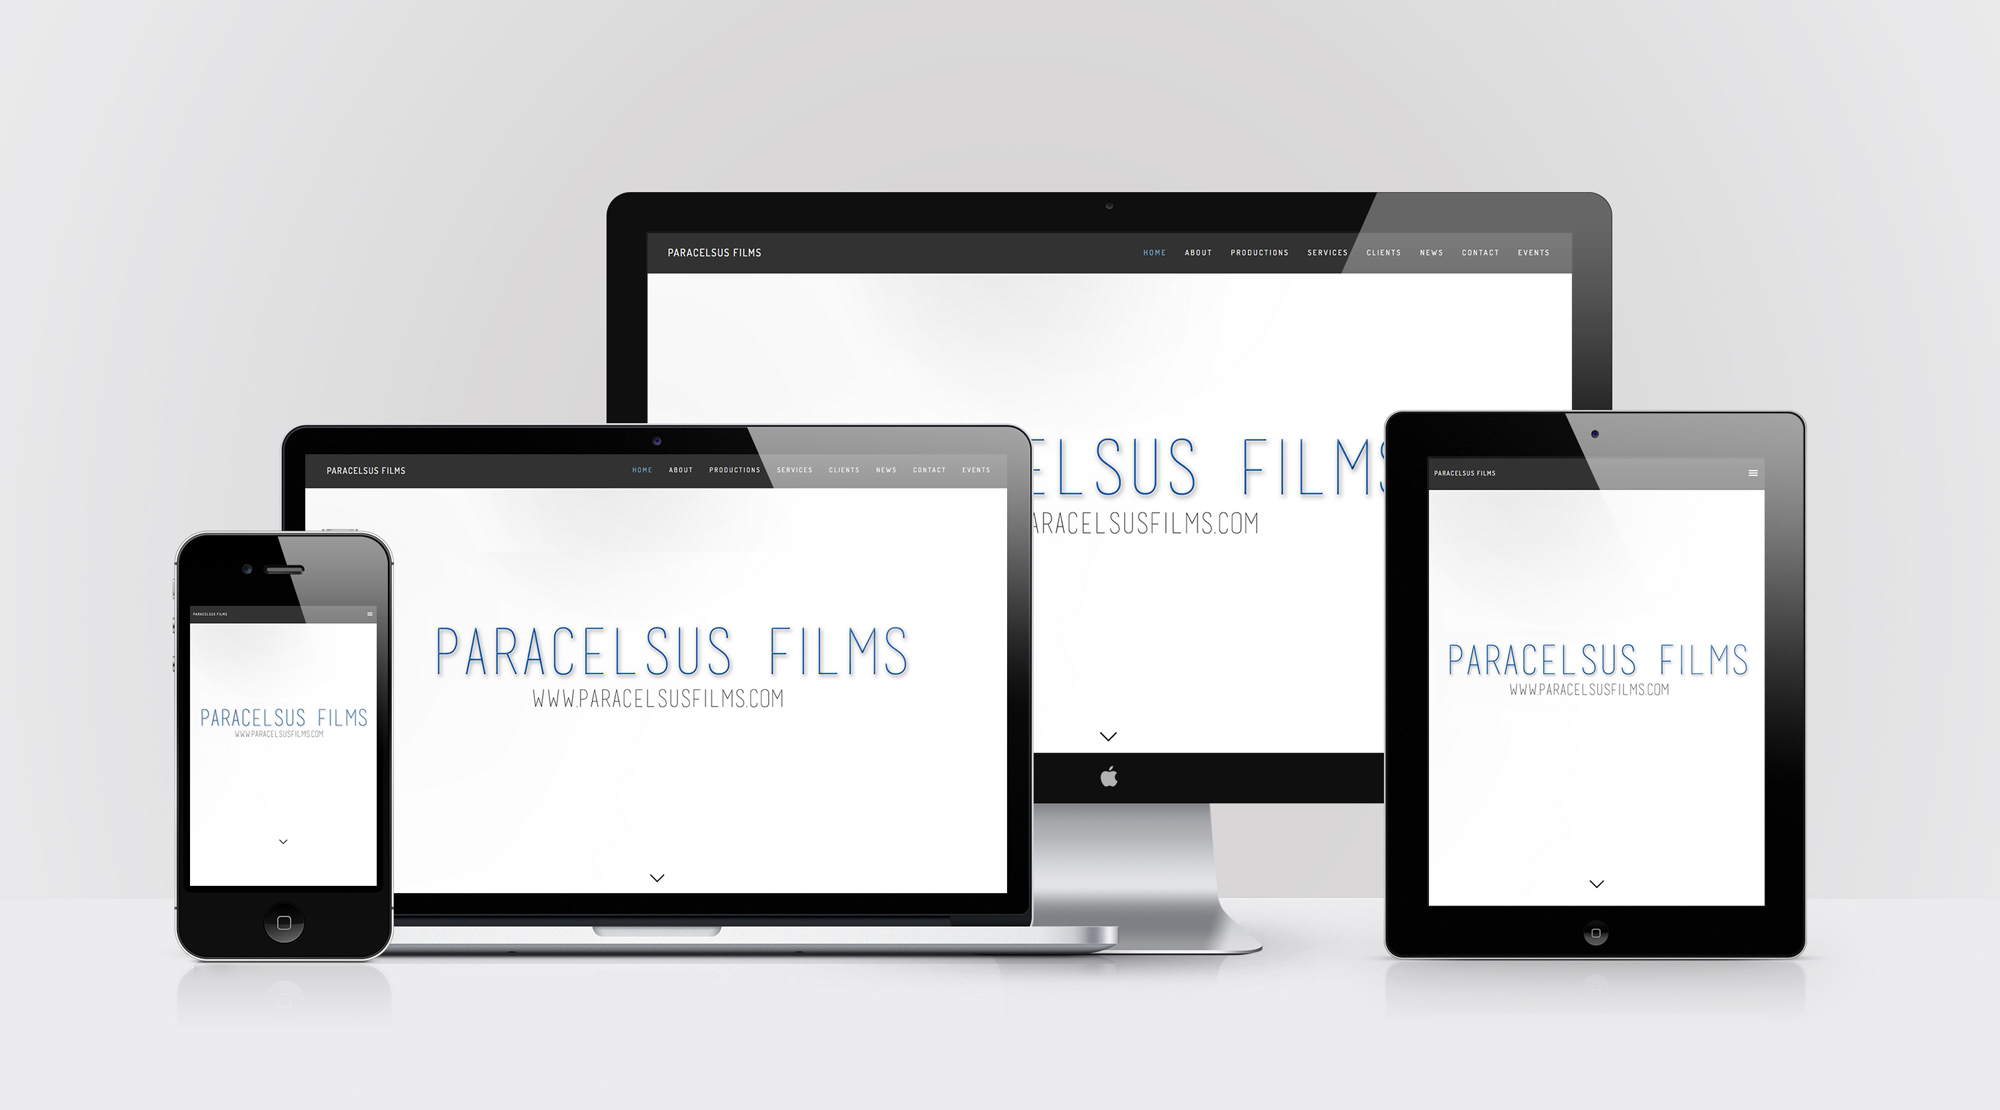 Device mockup for Paracelsus Films website design by Geena Matuson @geenamatuson #thegirlmirage.